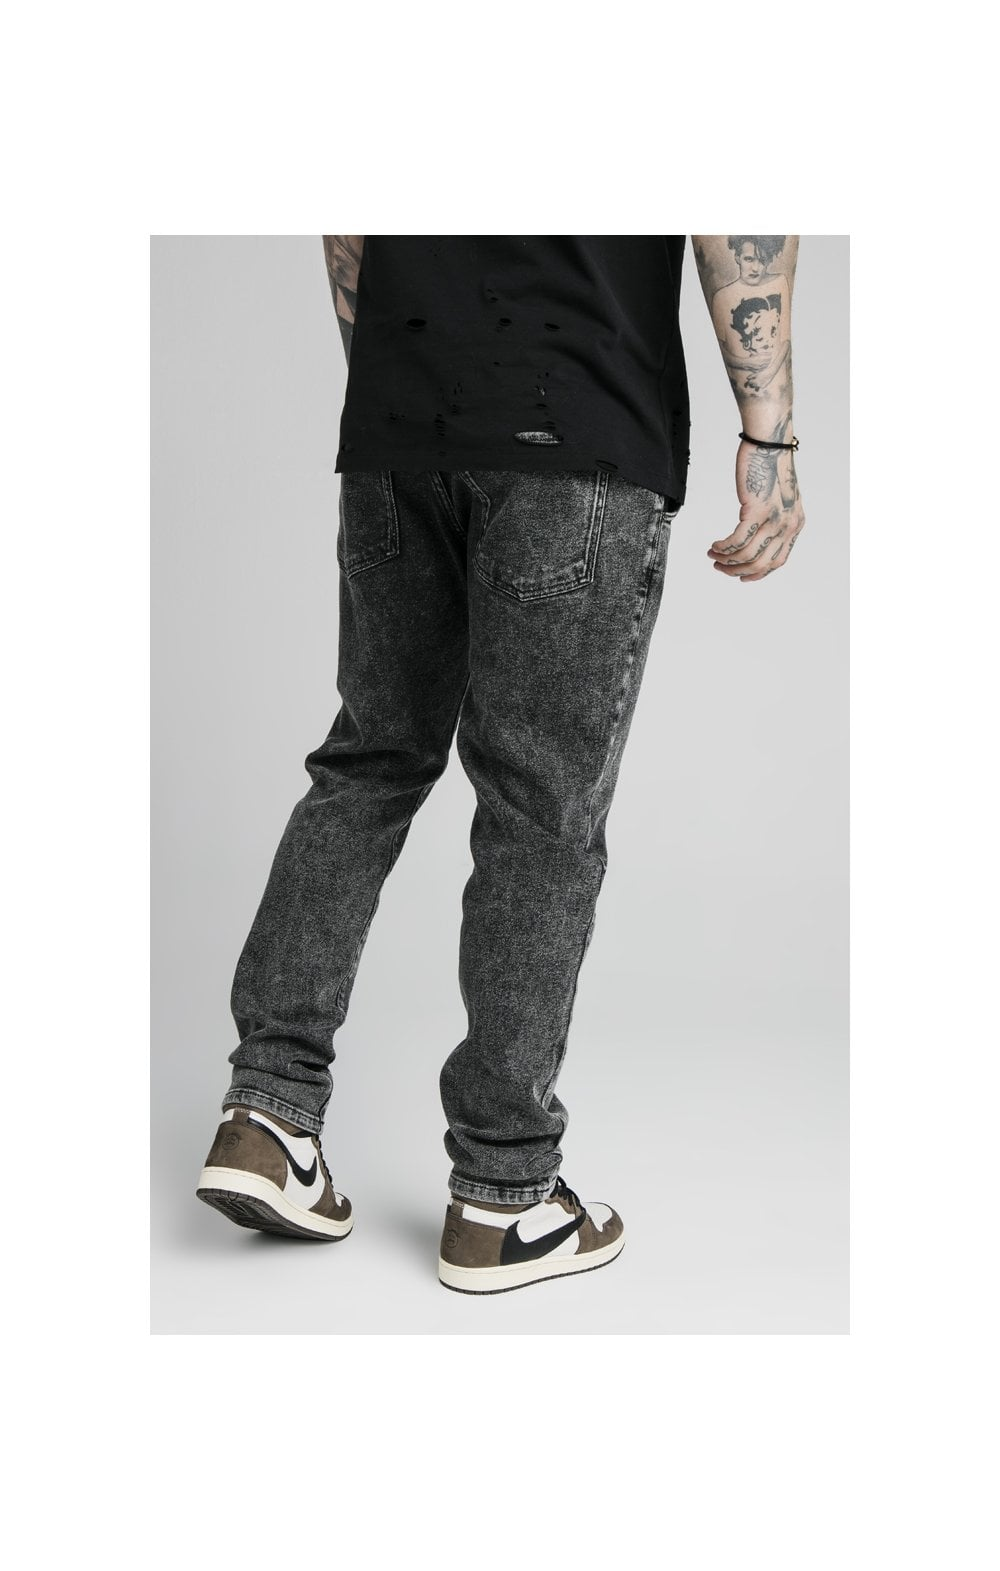 SikSilk Raw Loose Fit Denims - Acid Black (1)